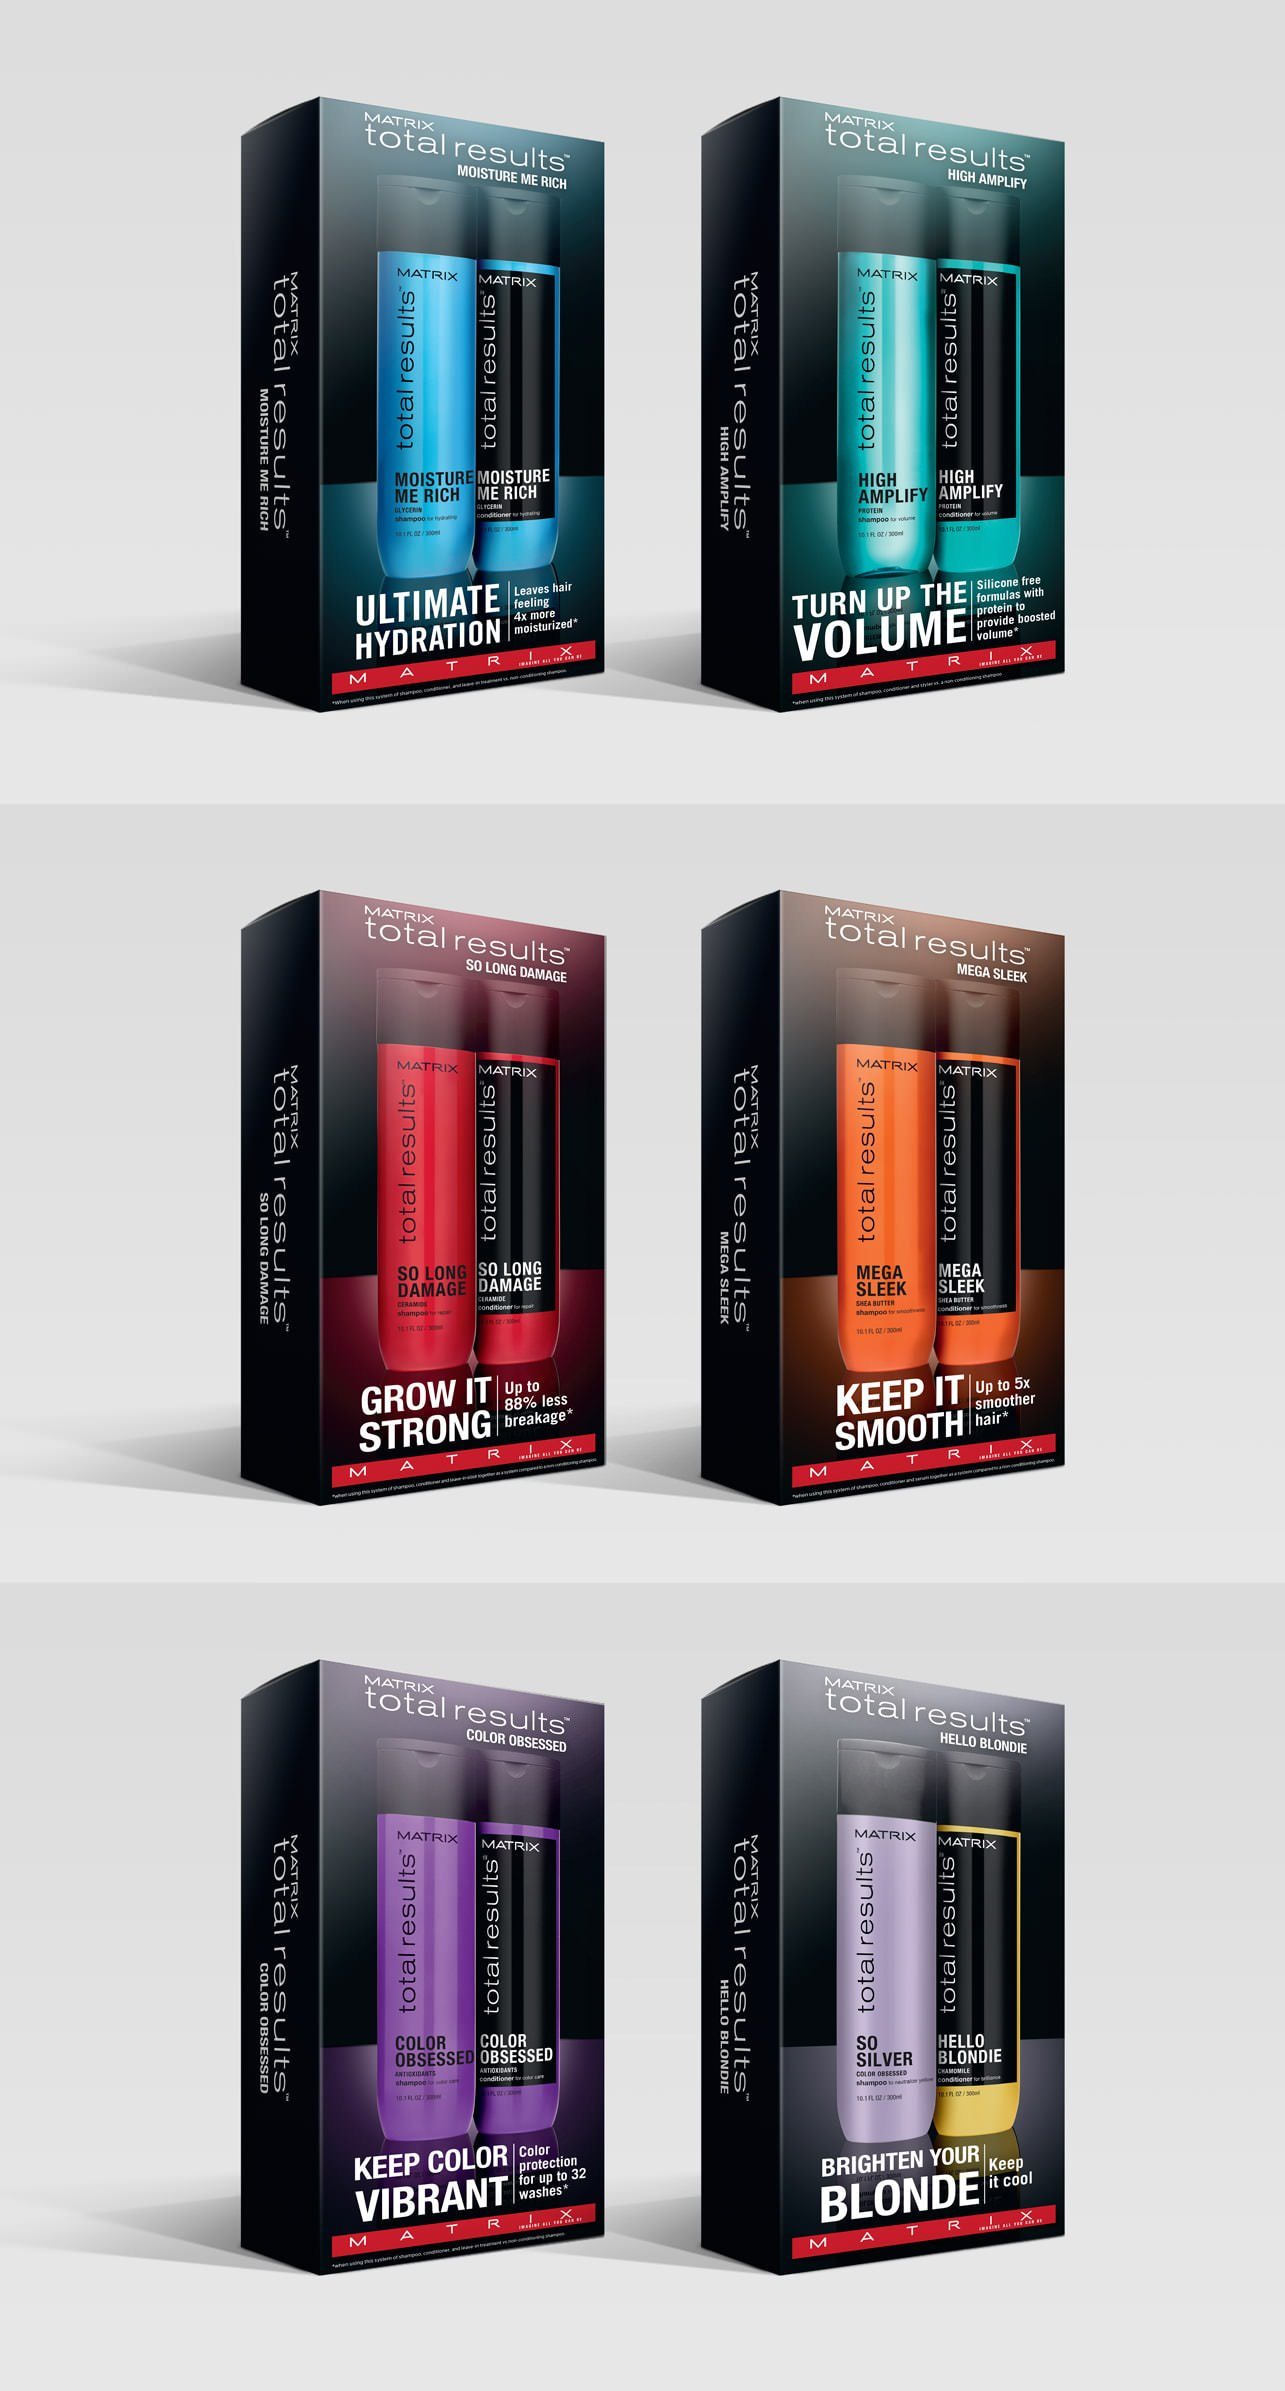 DJWFolio-Packaging_2015_Matrix_4